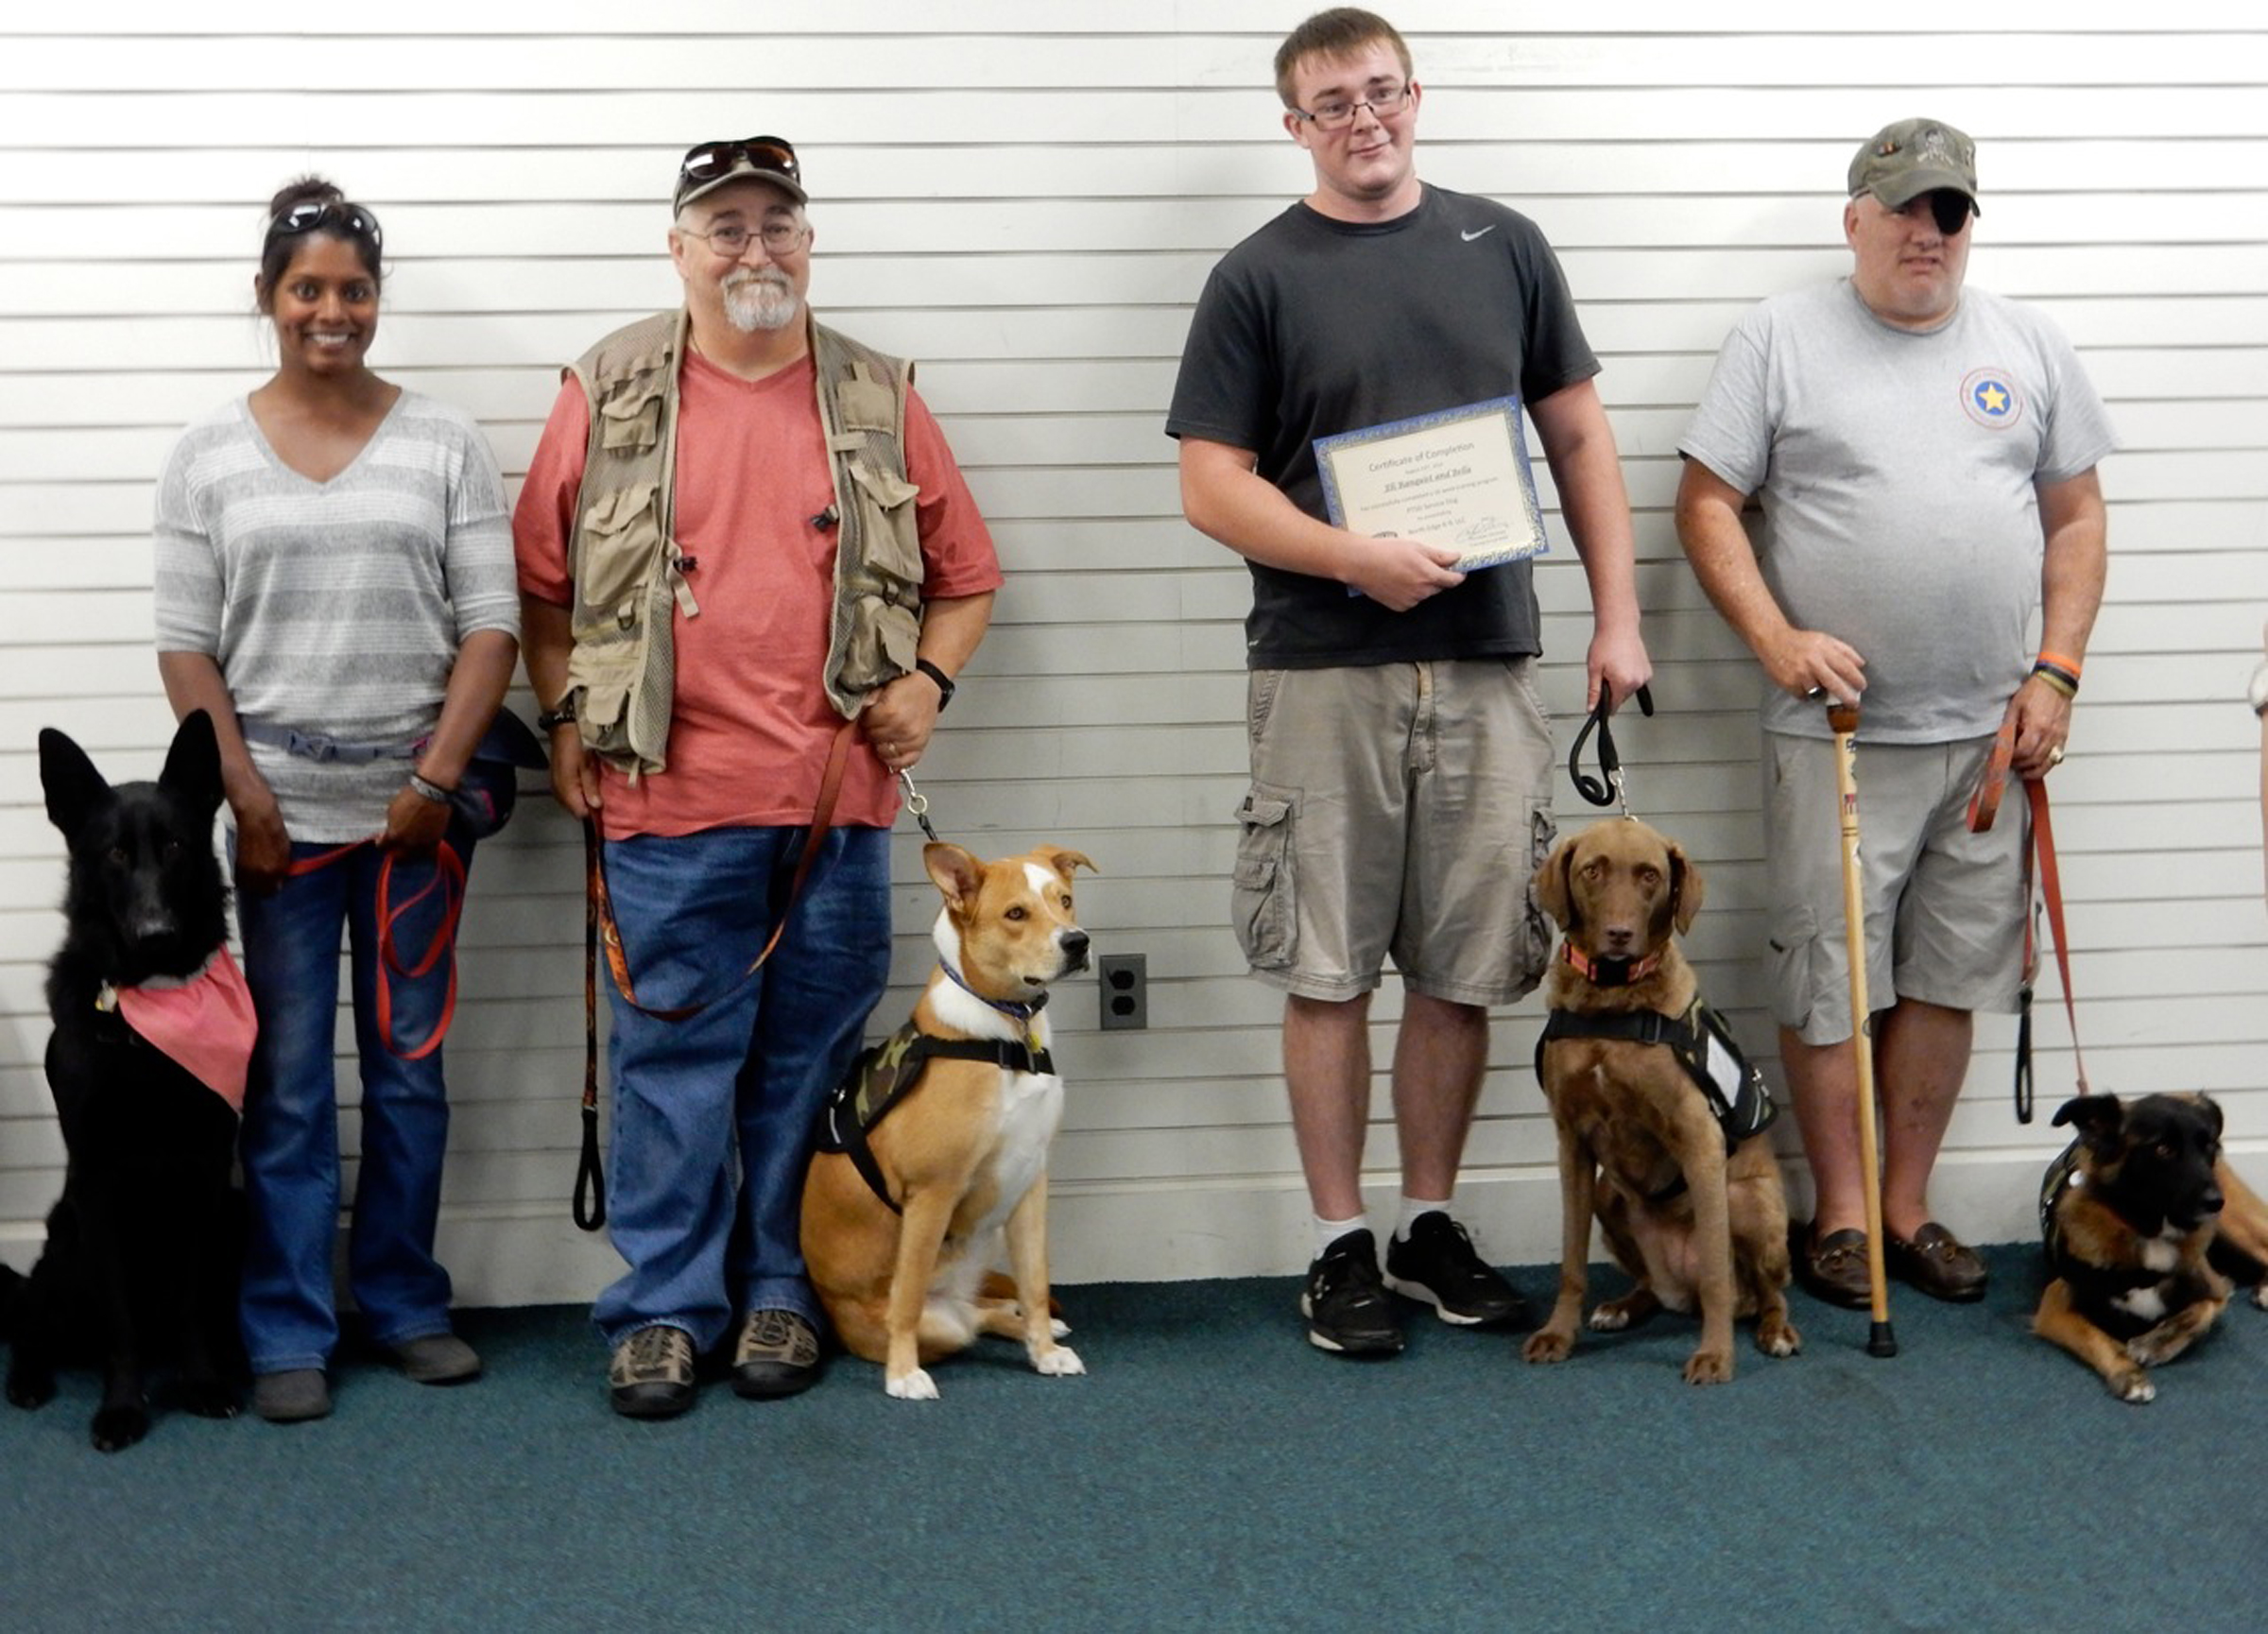 Paws for Peace is a program sponsored by Maine's Embrace A Vet organization that gives veterans suffering from Post Traumatic Stress Disorder a chance to train with a service dog at no charge. SUBMITTED PHOTO